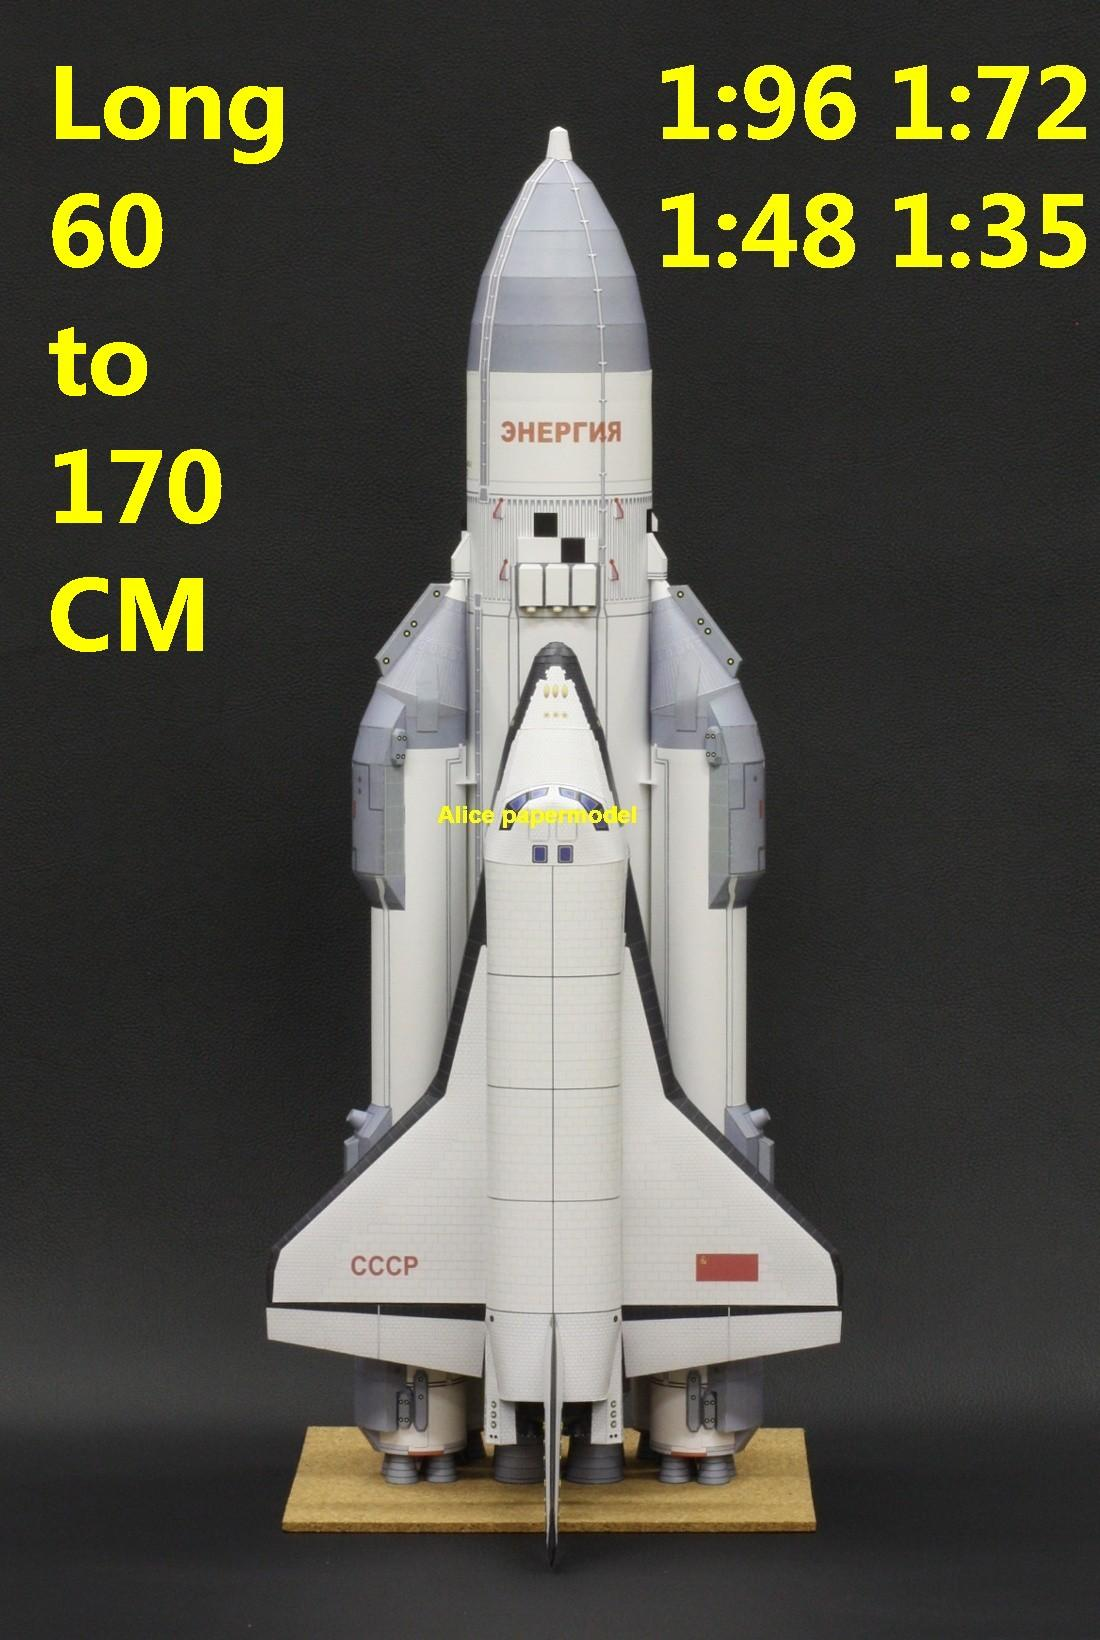 Russia Soviet union USSR space shuttle EnergiaM Energia-M buran energia Raketoplan Launch vehicle launcher Space Transportation System STS carrier rocket Ballistic missile plane Satellite spaceship large big scale size model army Dioramas diorama Barbie doll Military Soldiers scene scenes scenery background base models kit on for sale shop store